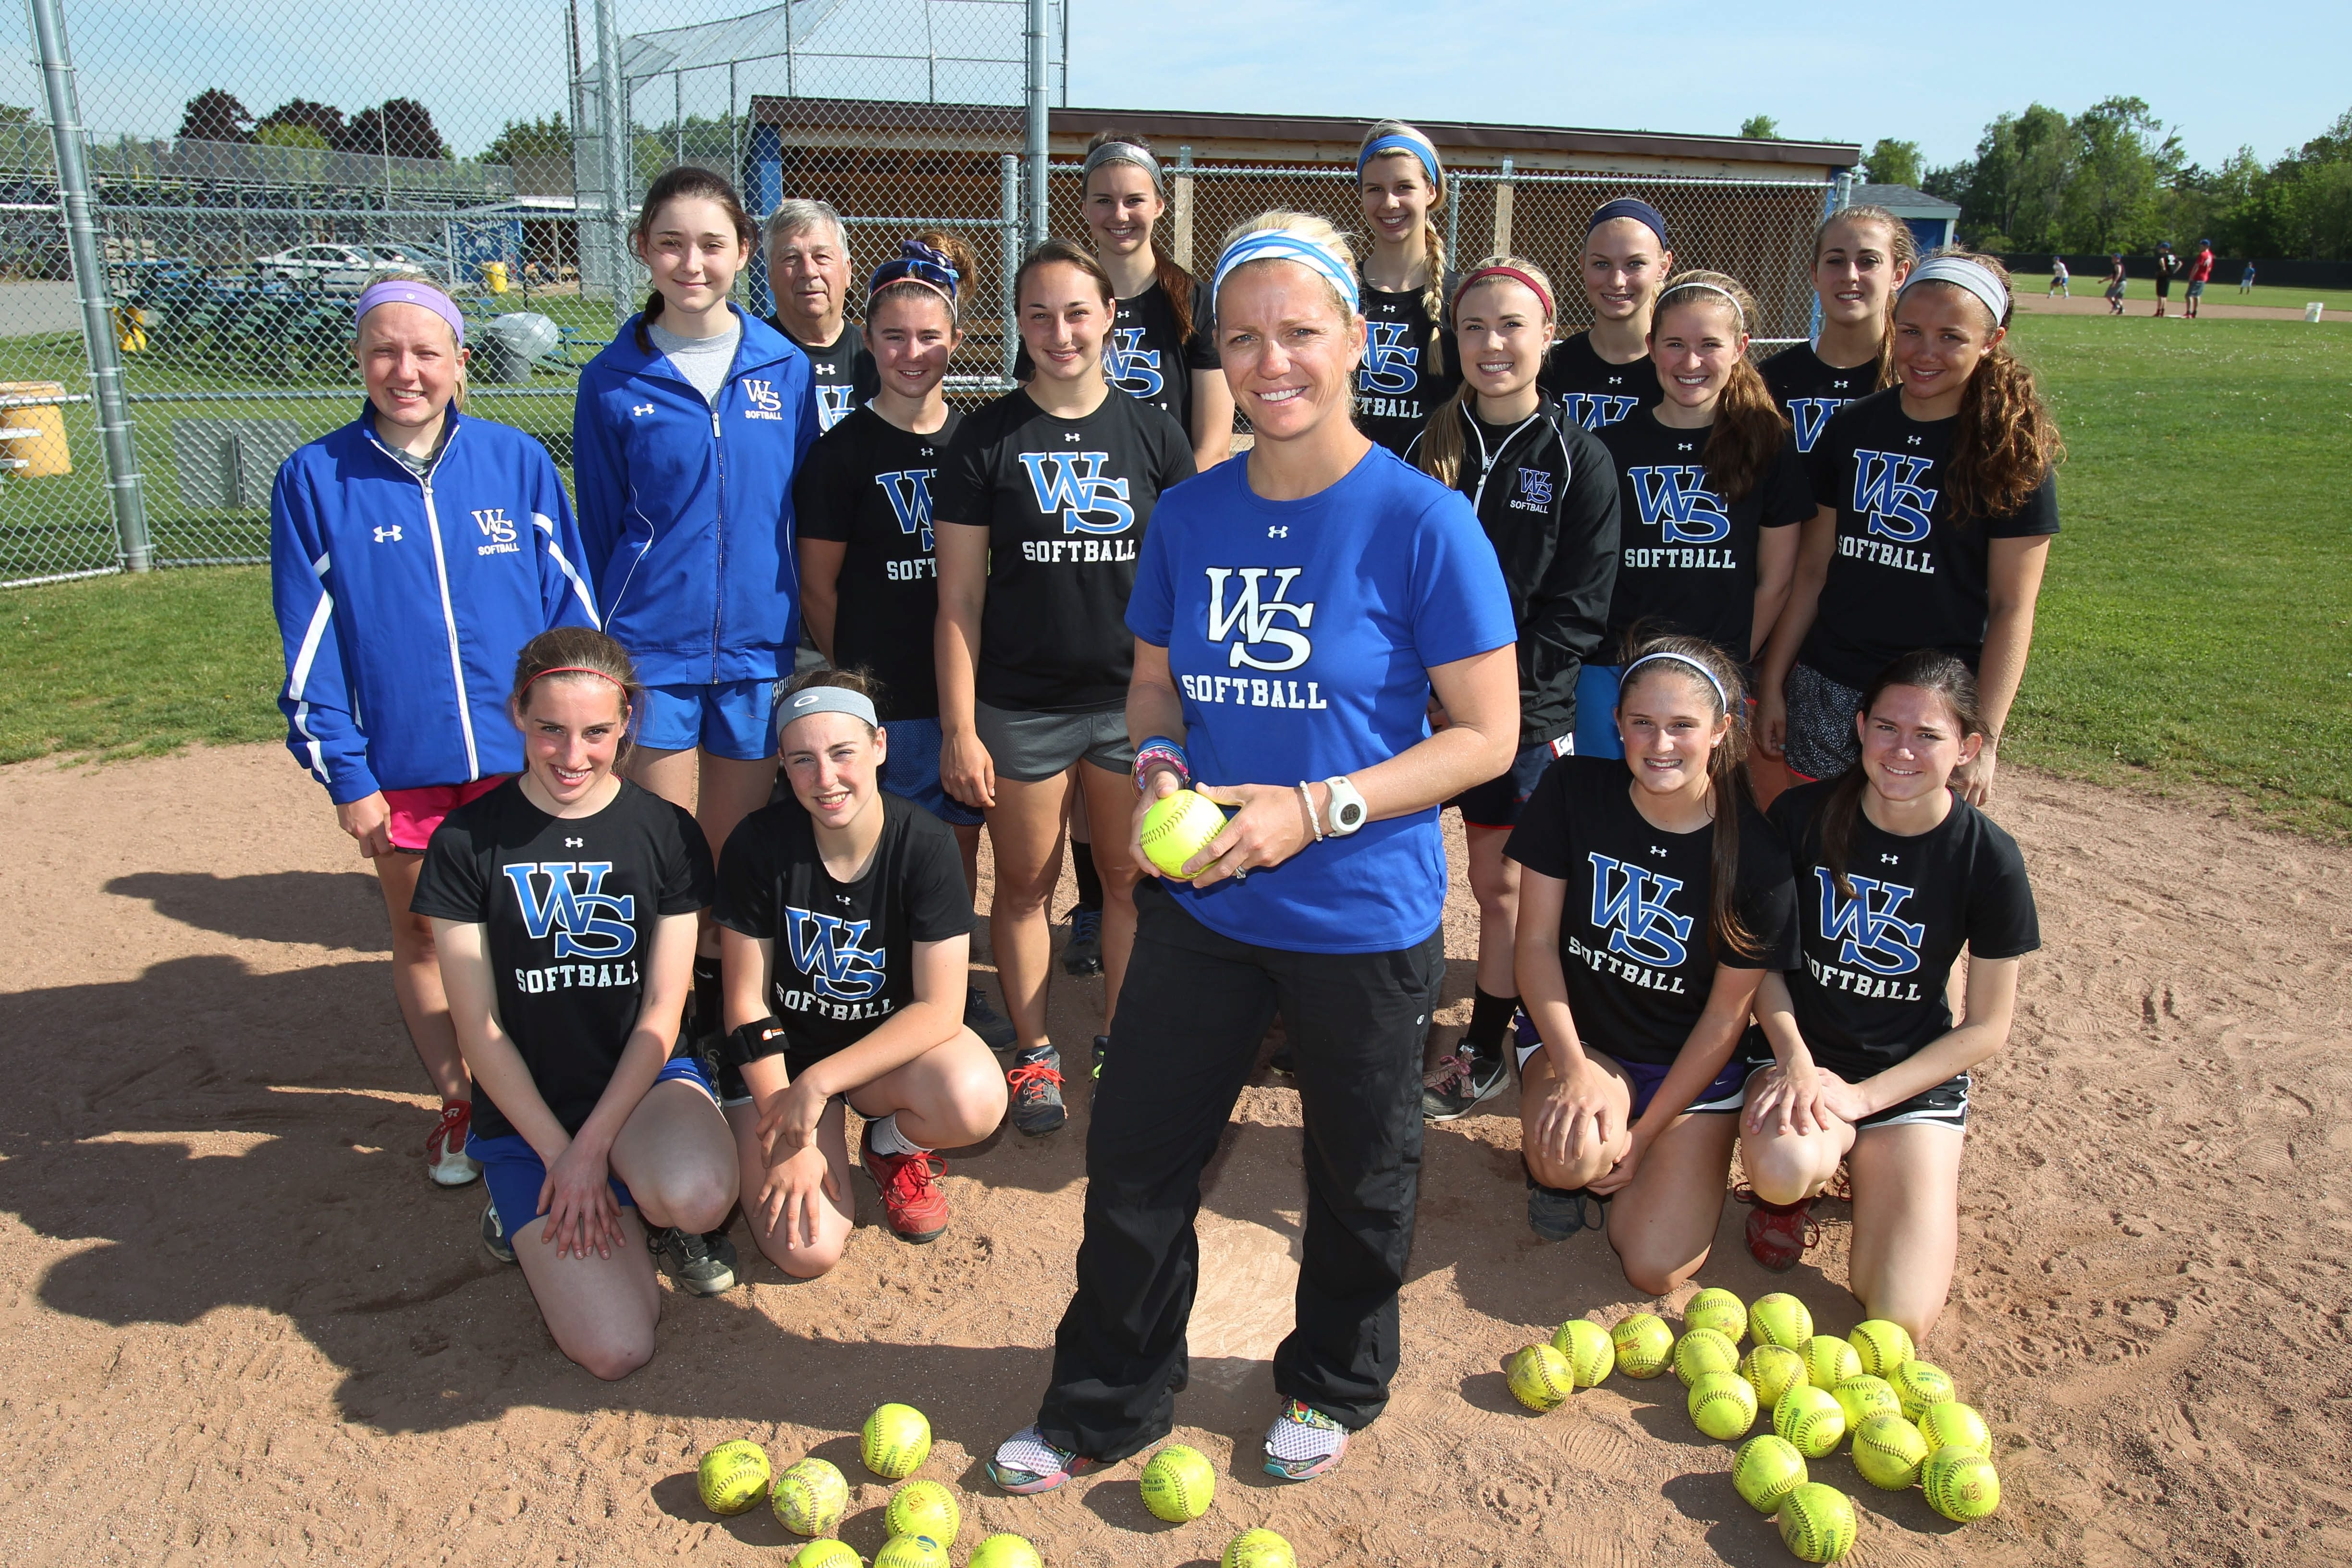 Williamsville South won its first league title since the death of its cherished coach Gerry Gentner. The Billies, coached by Genter's daughter, Julie, earned the No. 1 seed in Class A with a 16-2 record. They host Kenmore East today in a quarterfinal game.